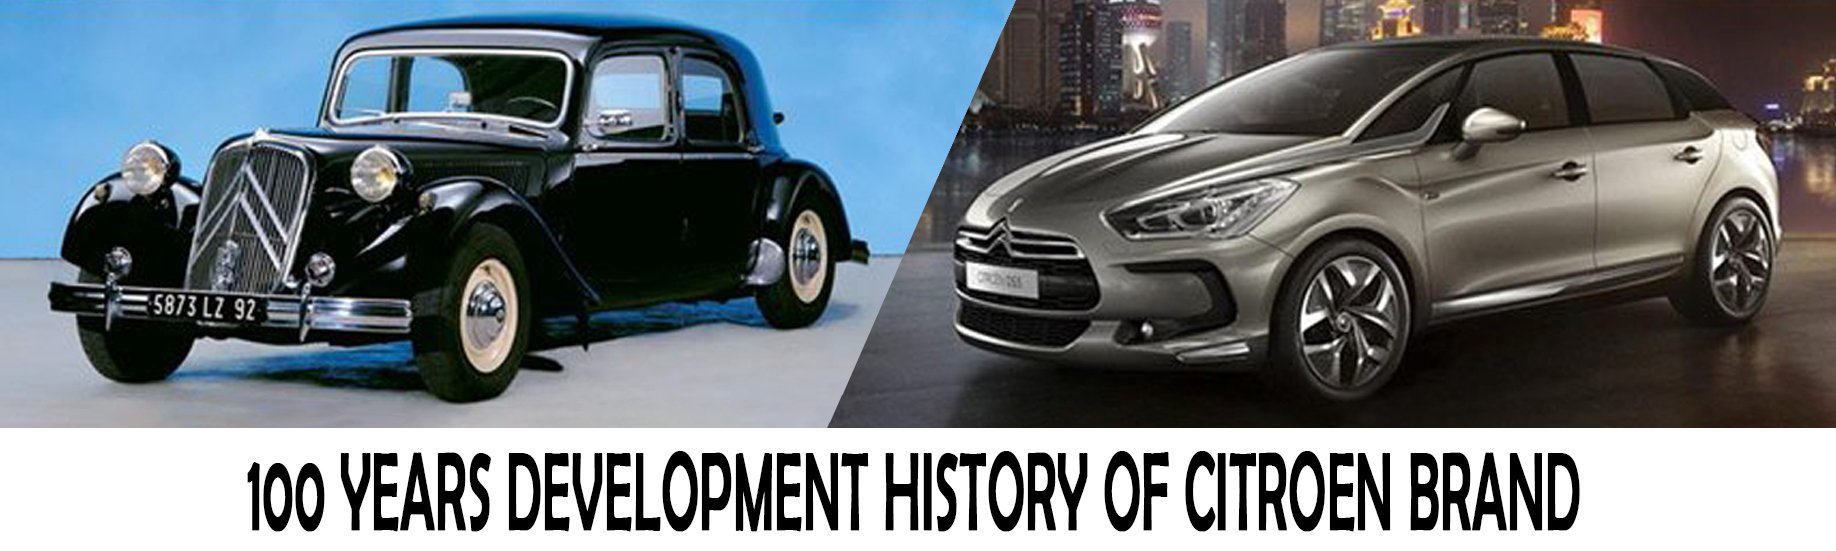 100 Years Of Continuous Innovation - Citroen Brand History